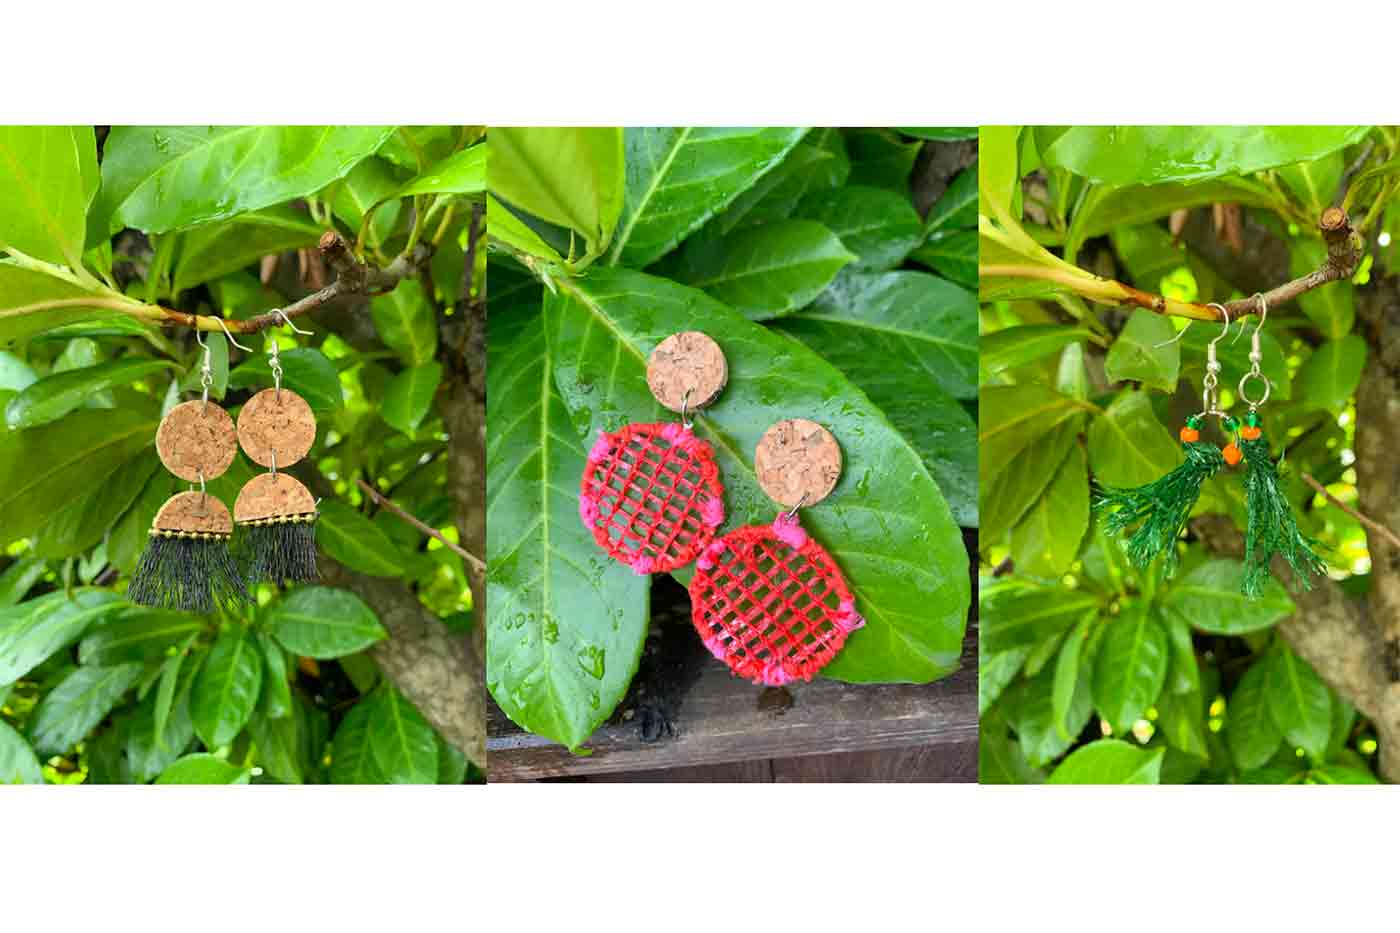 earrings made from produce bags and cork